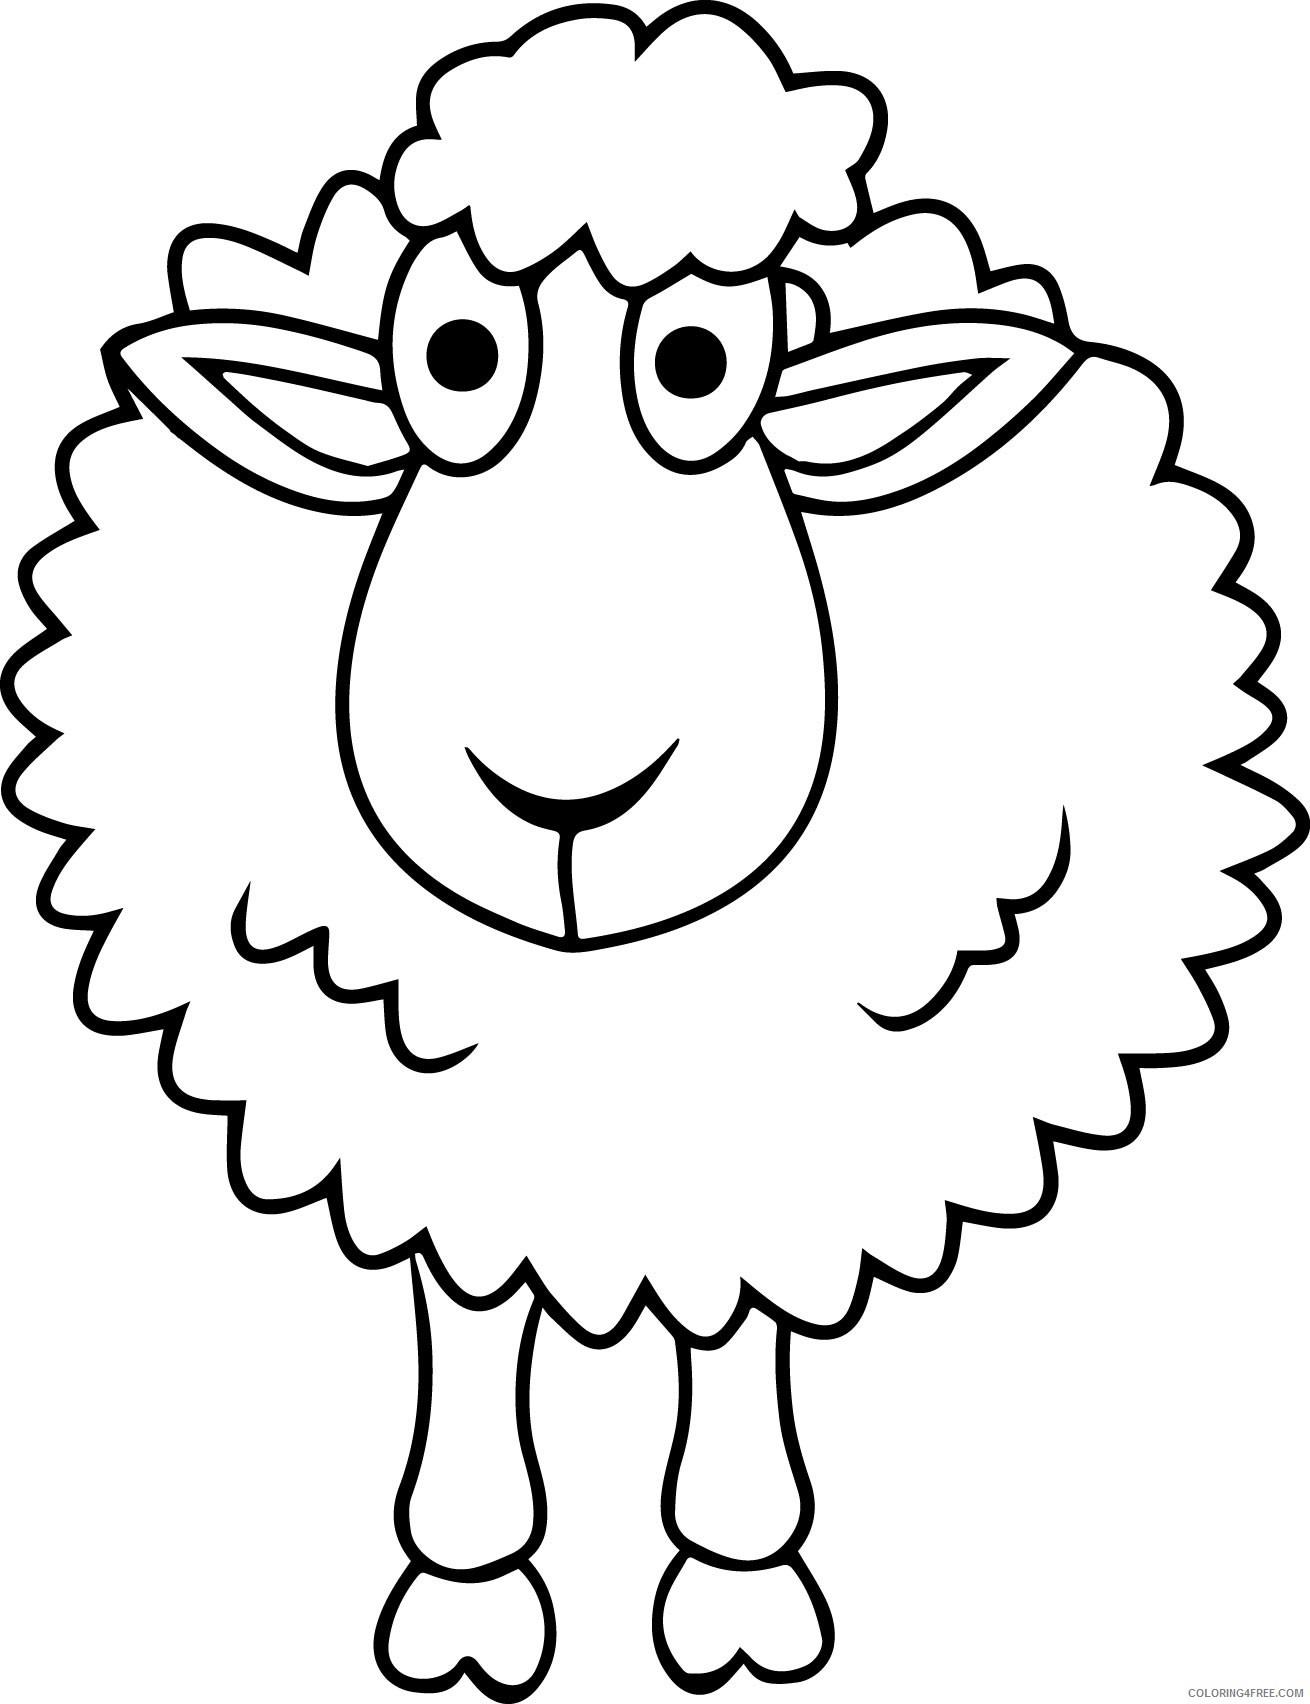 sheep coloring pages free for kids Coloring4free